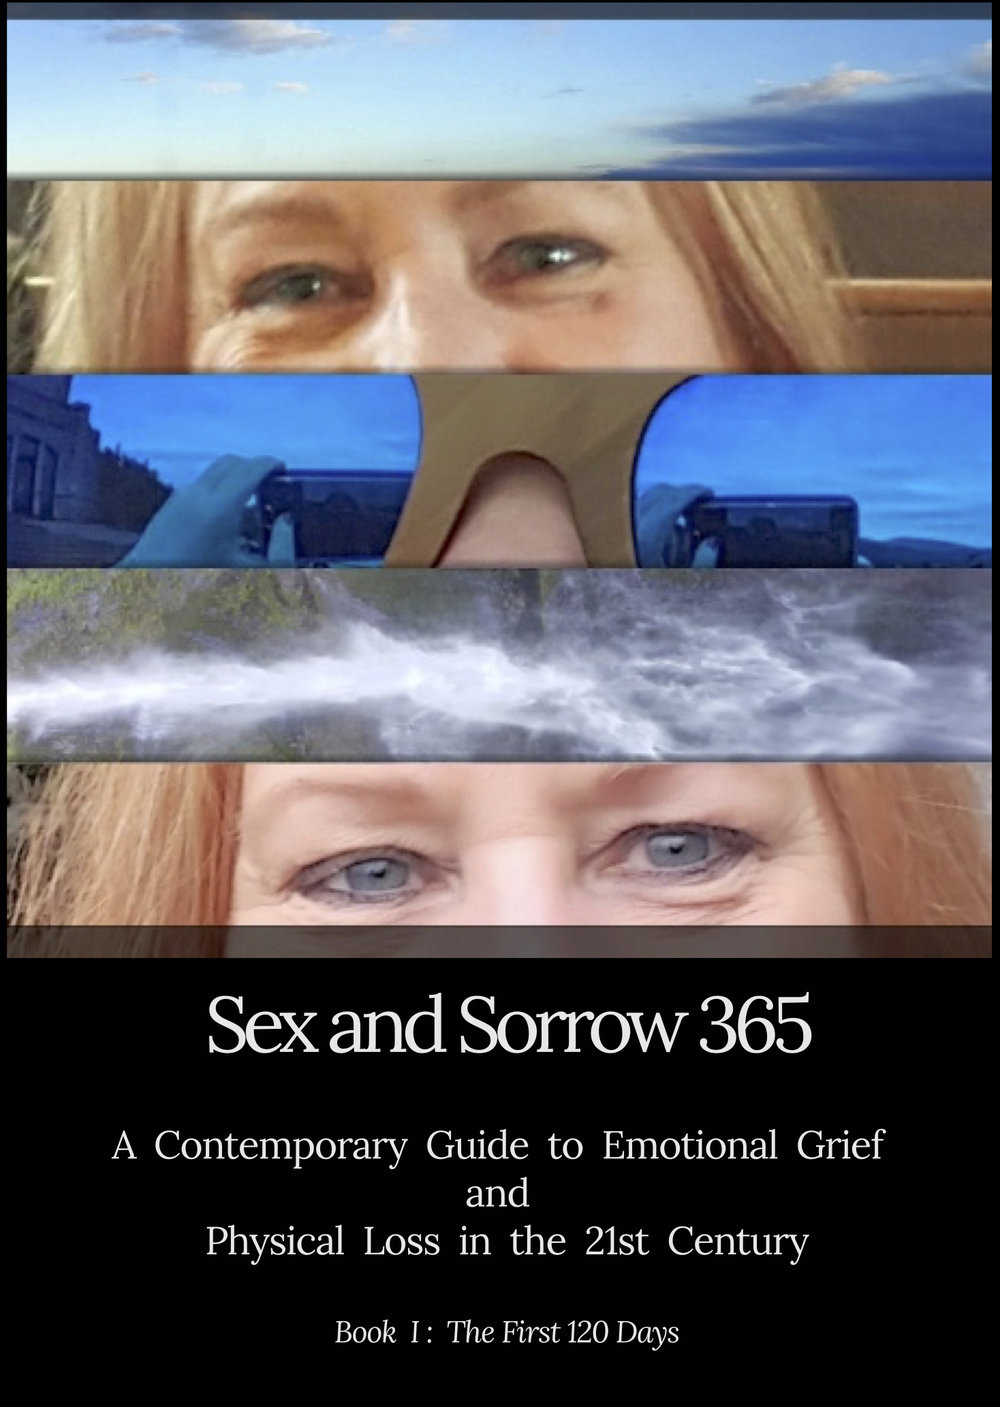 Drake Book Cover Sex and Sorrow.jpg